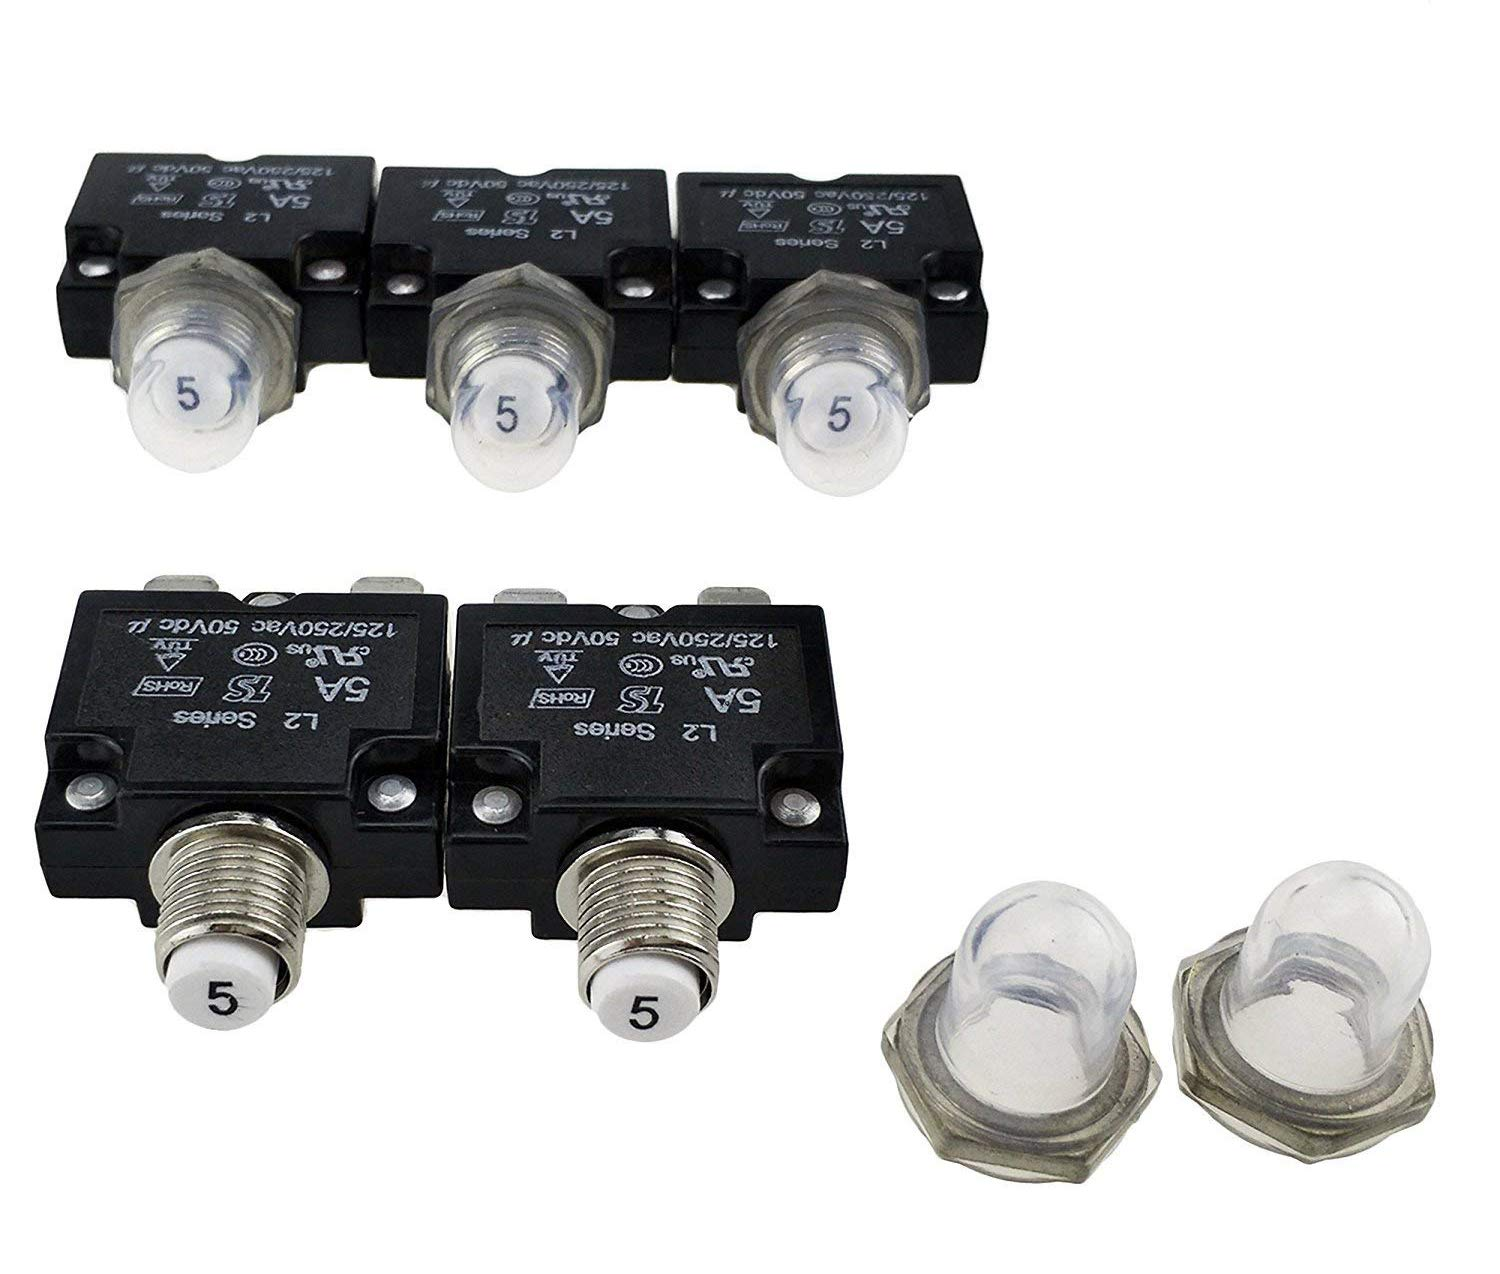 Greenwayyd 5Amps Circuit Breakers with Manual Reset Quick Connect Terminals DC50V AC125-250V, Pack of 5 F253-5